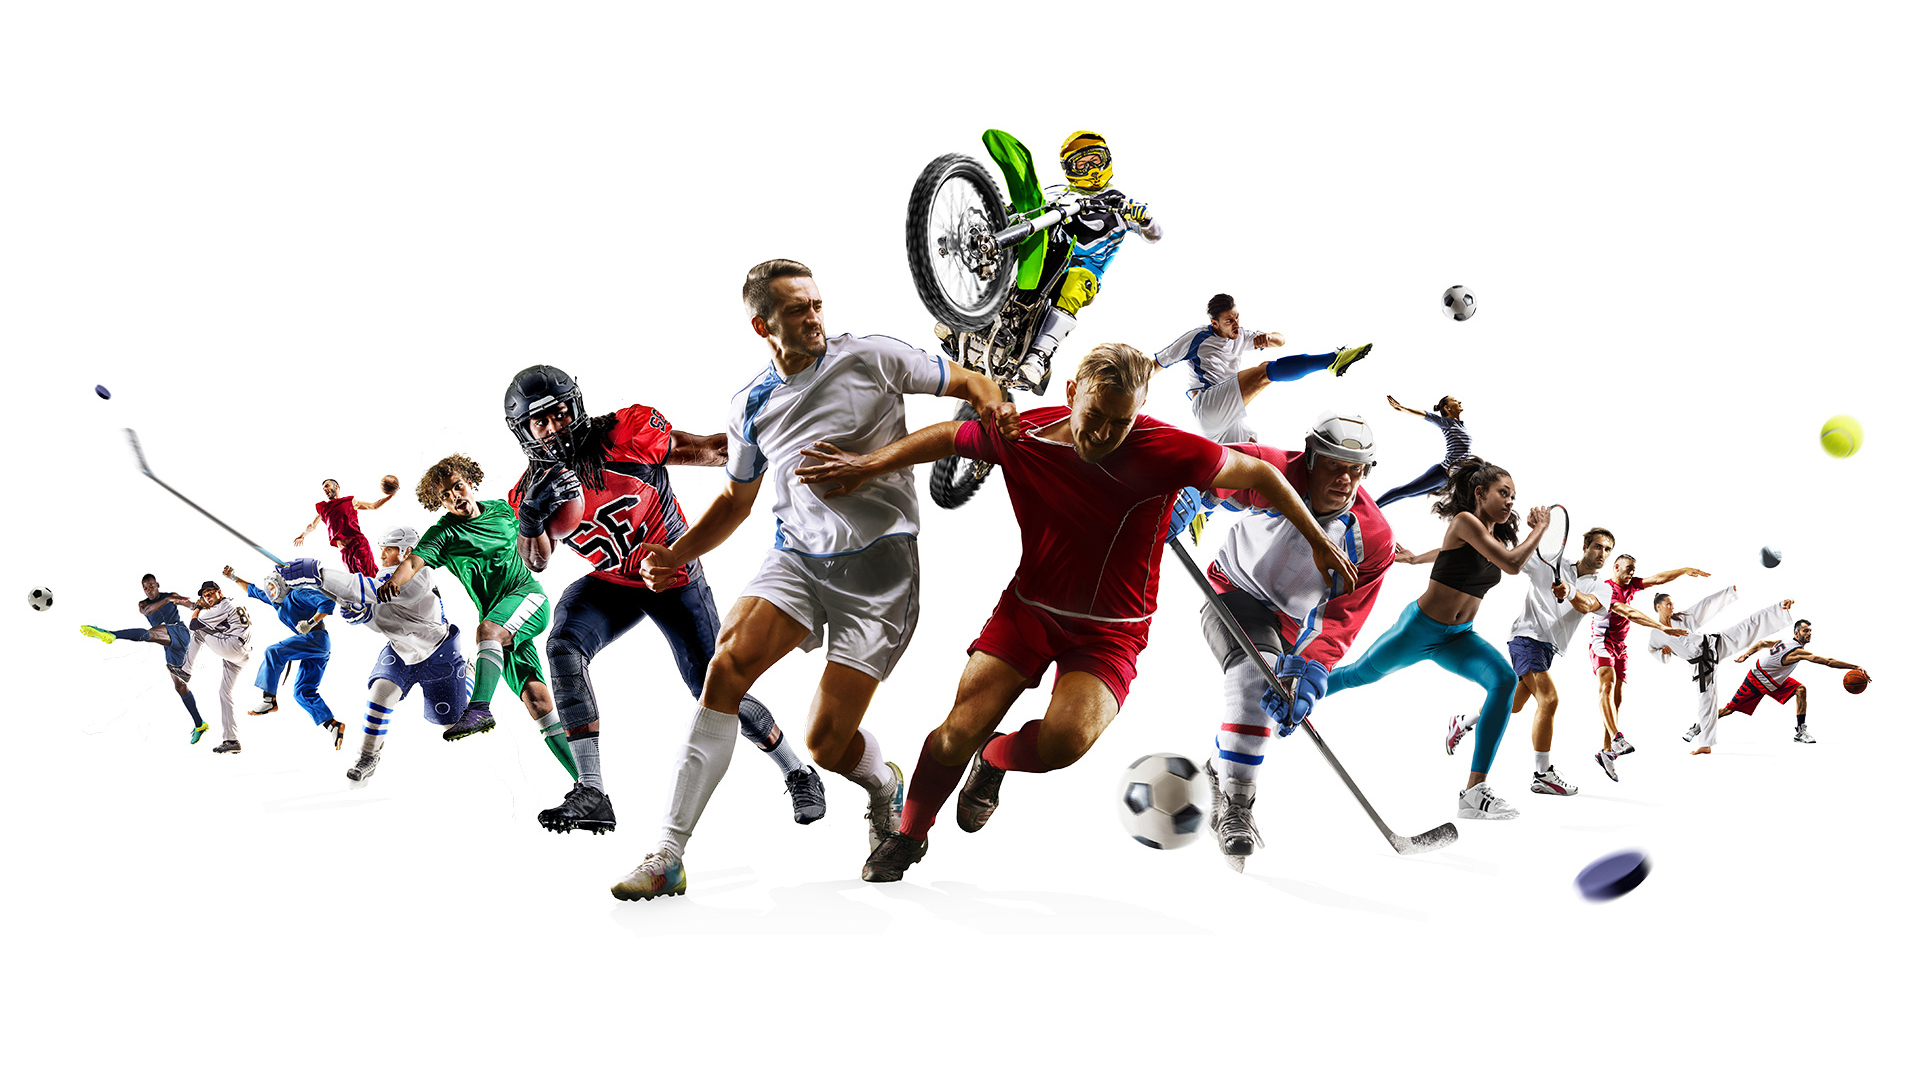 Athletes playing sports